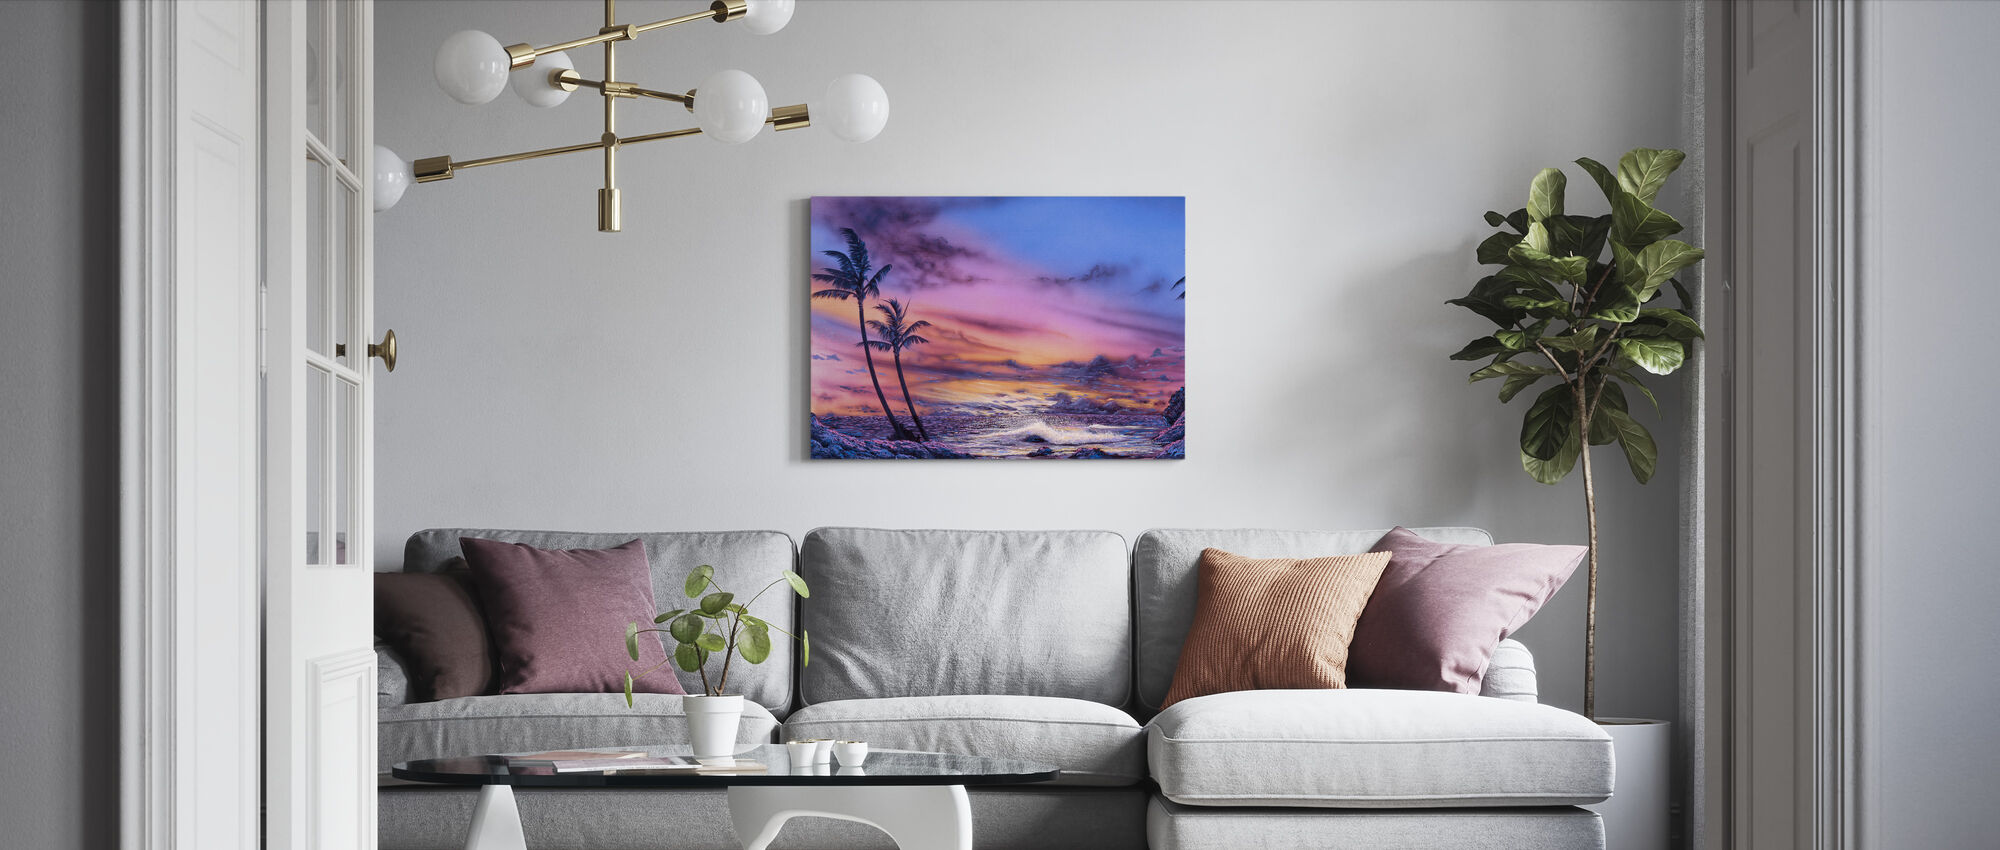 Venus Sunset - Canvas print - Living Room